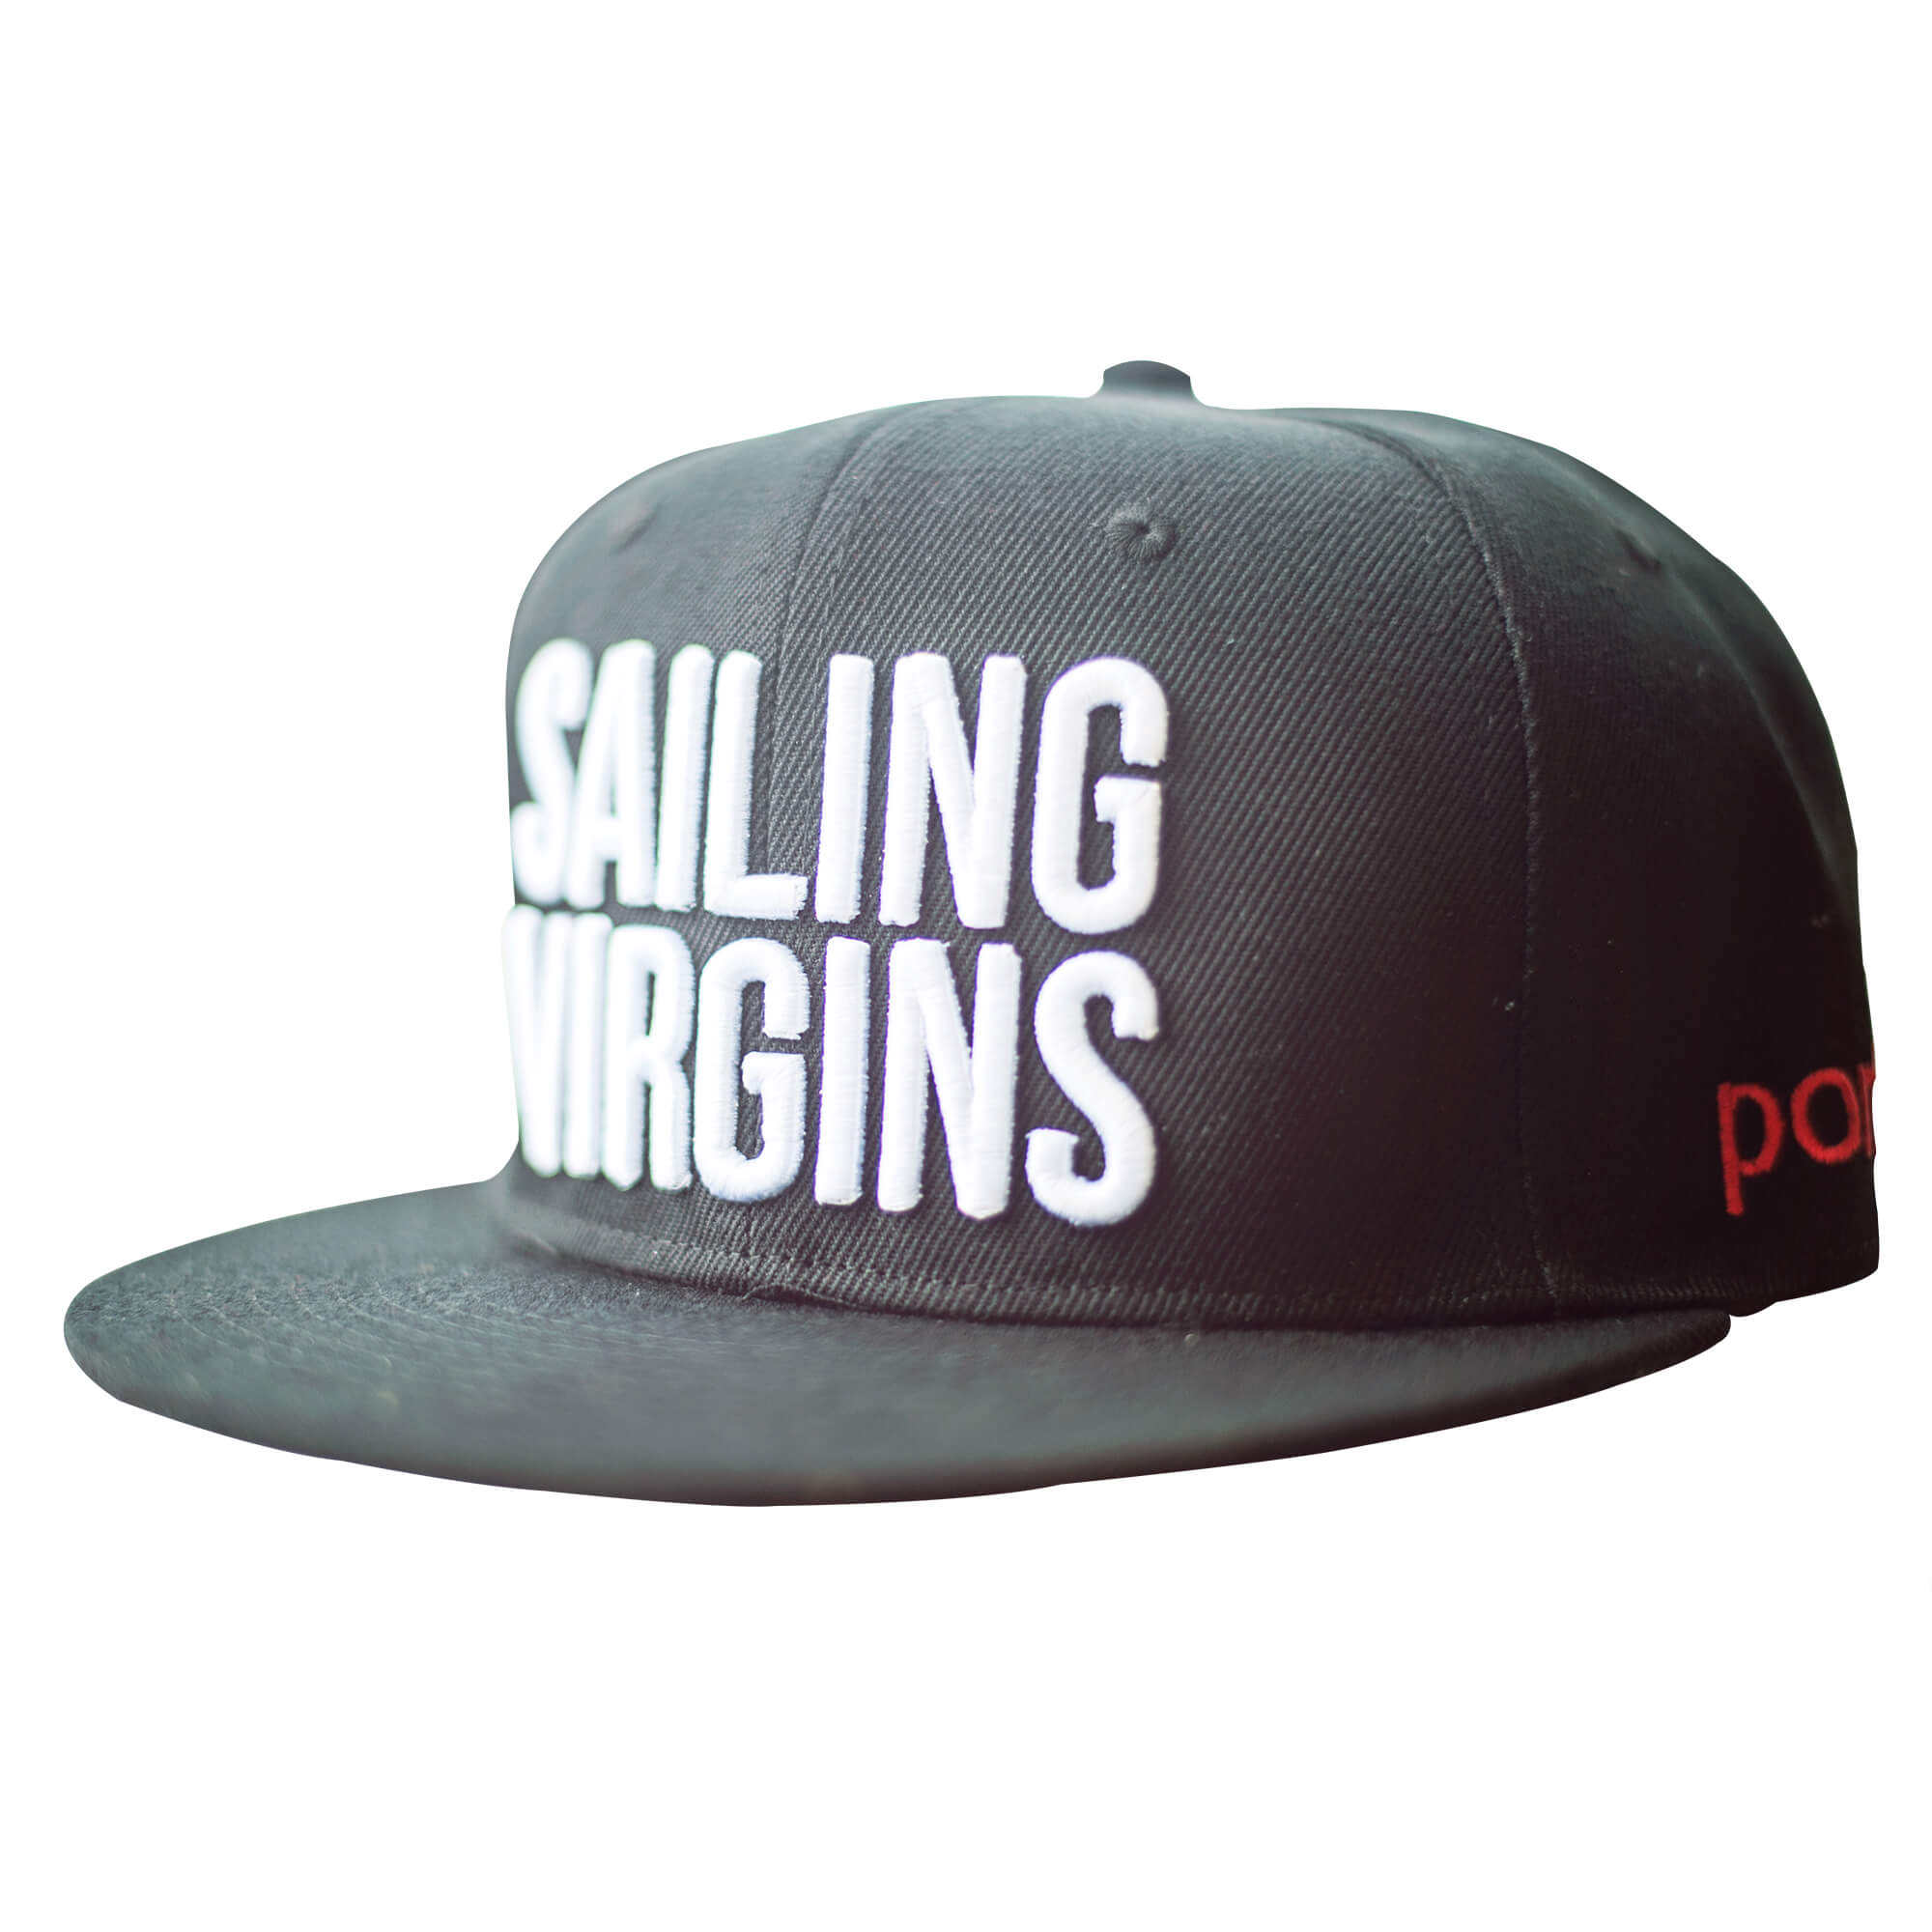 3046654d8fa Sailing Virgins Snap-back Hat